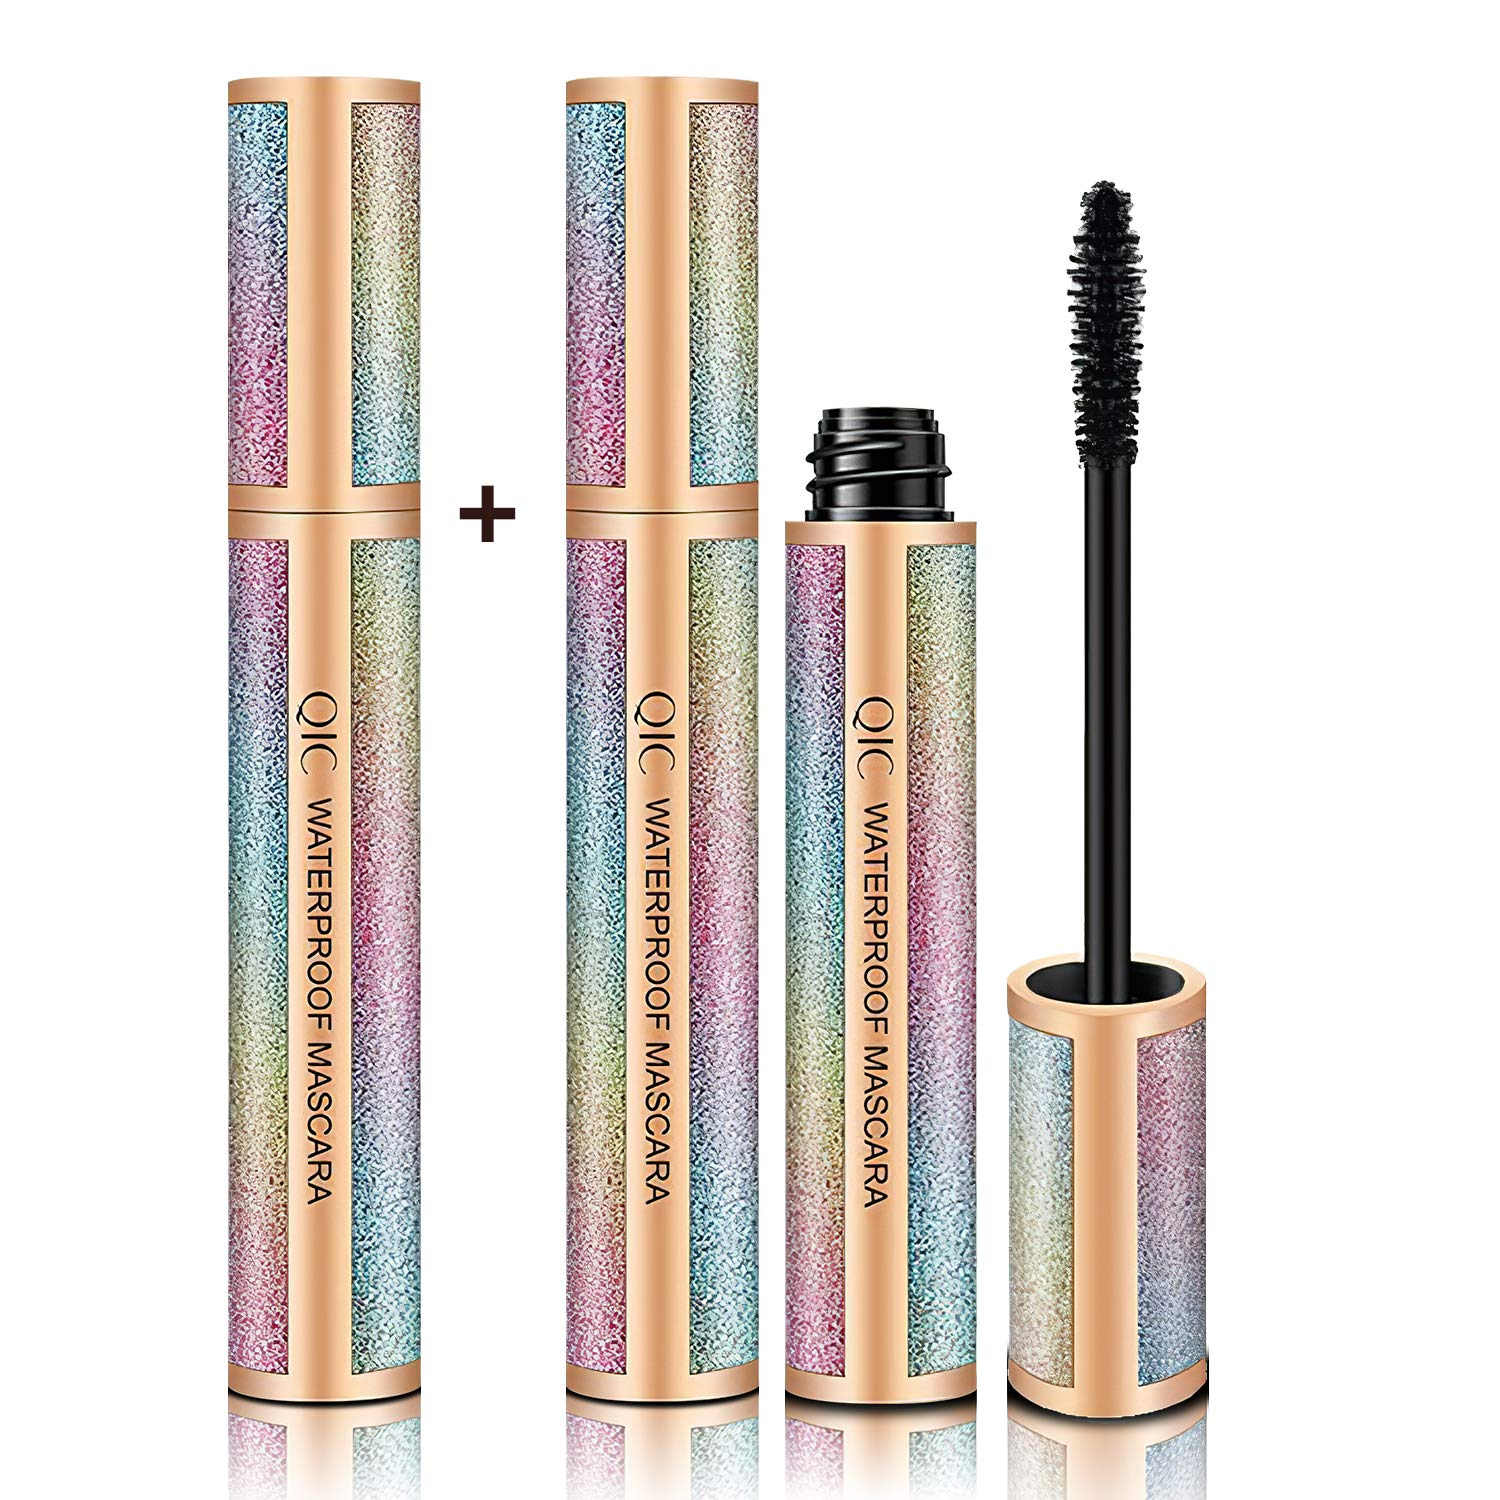 Vafee 4D Silk Fiber Lash Mascara,2 Packs, Luxuriously Longer, Thicker, Voluminous Eyelashes, Long-Lasting, Dramatic Extension, Waterproof Smudge-proof, Hypoallergenic Formula